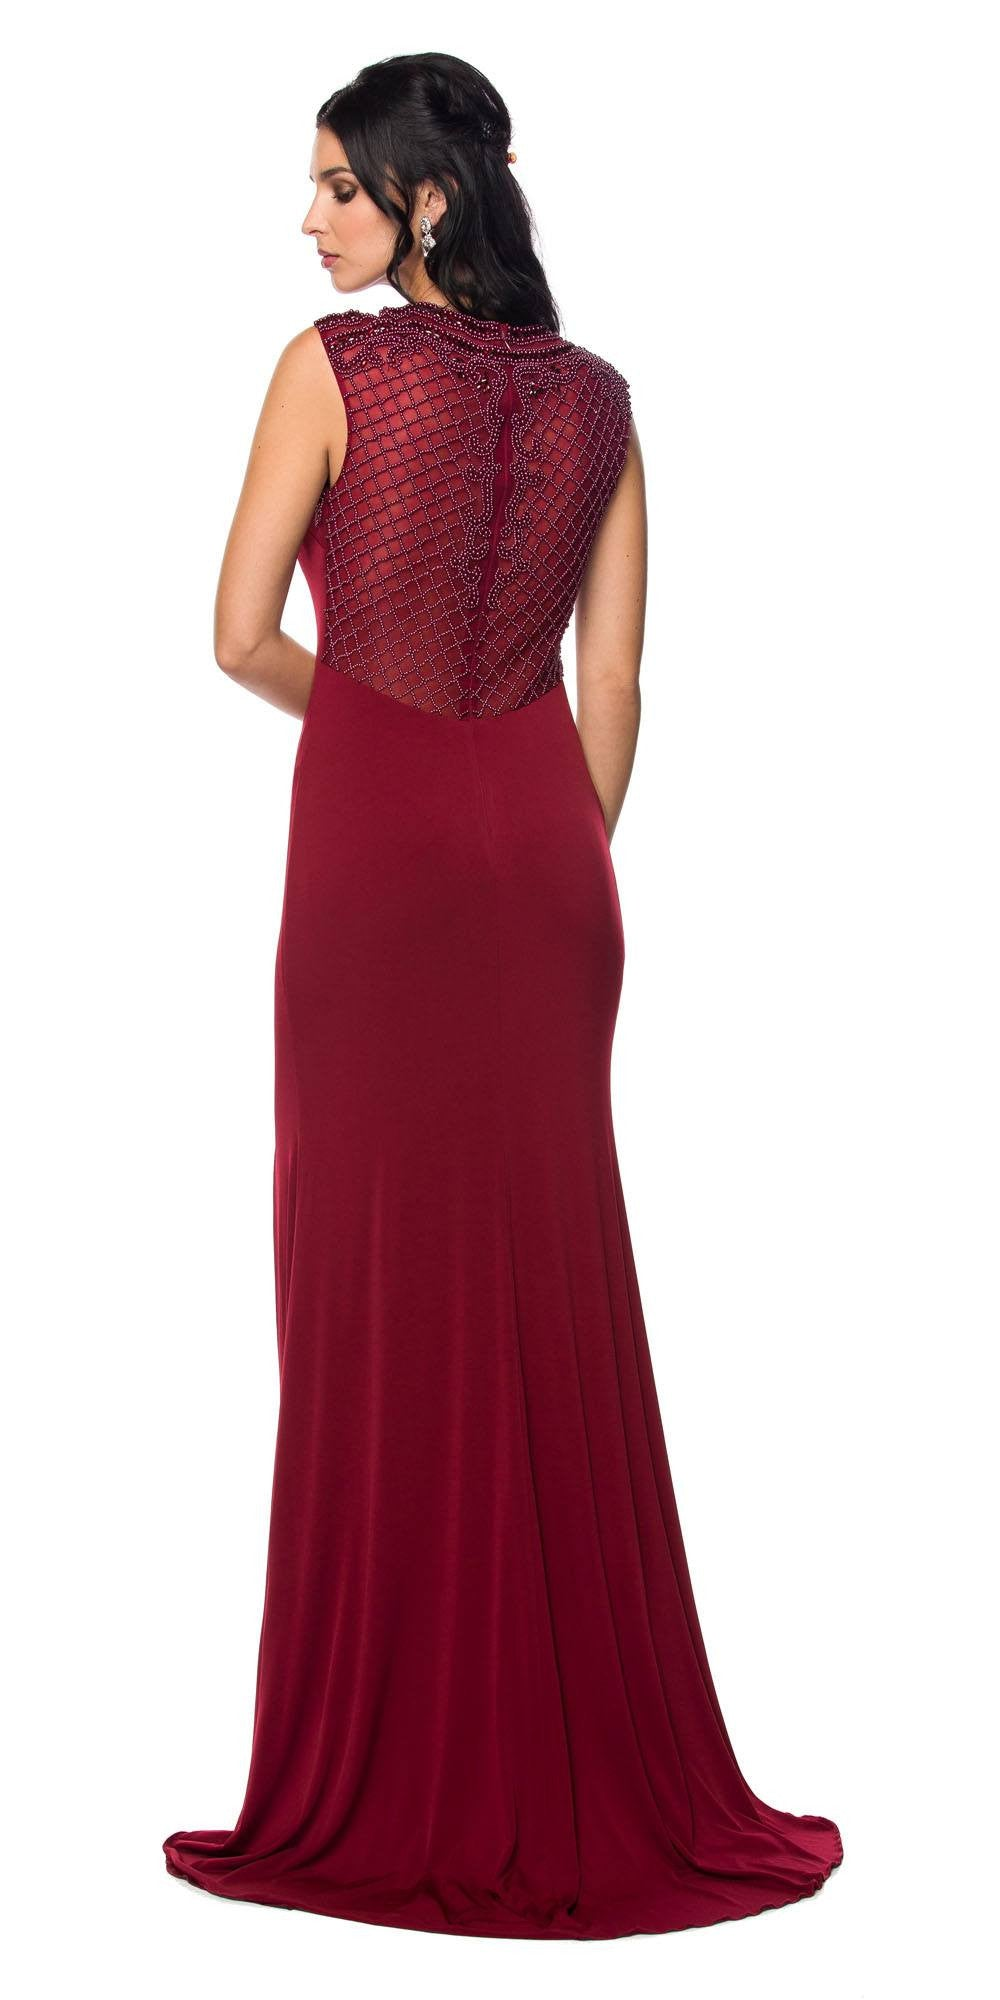 Juliet 627 Wine ITY Cap Sleeves Evening Gown Illusion Beaded ...